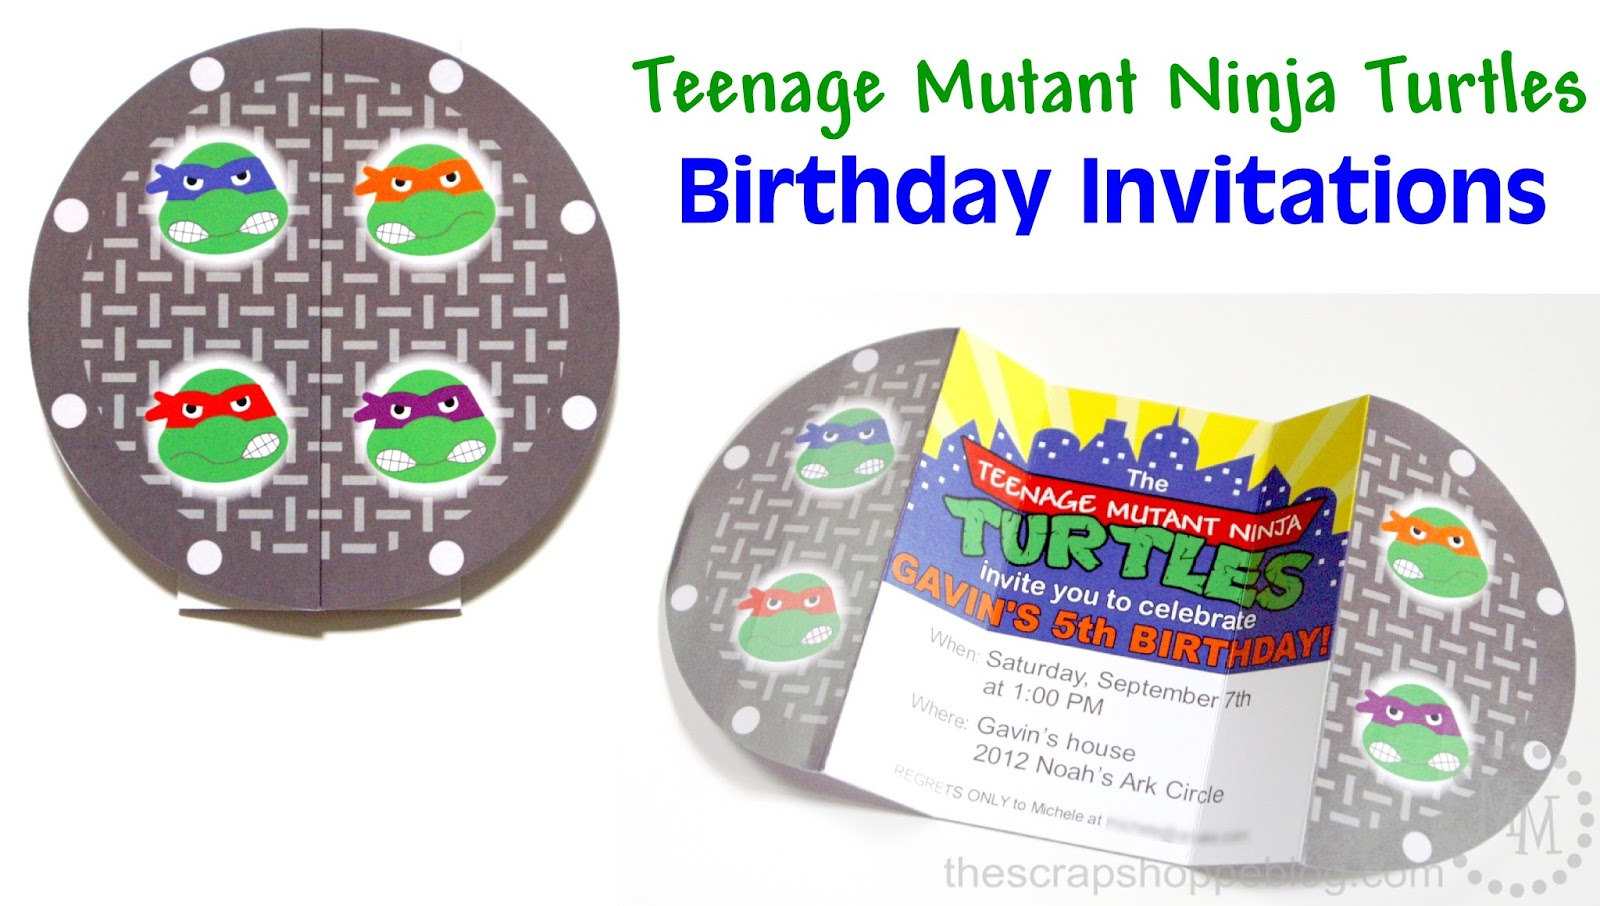 Teenage Mutant Ninja Turtles TMNT Birthday Invitations